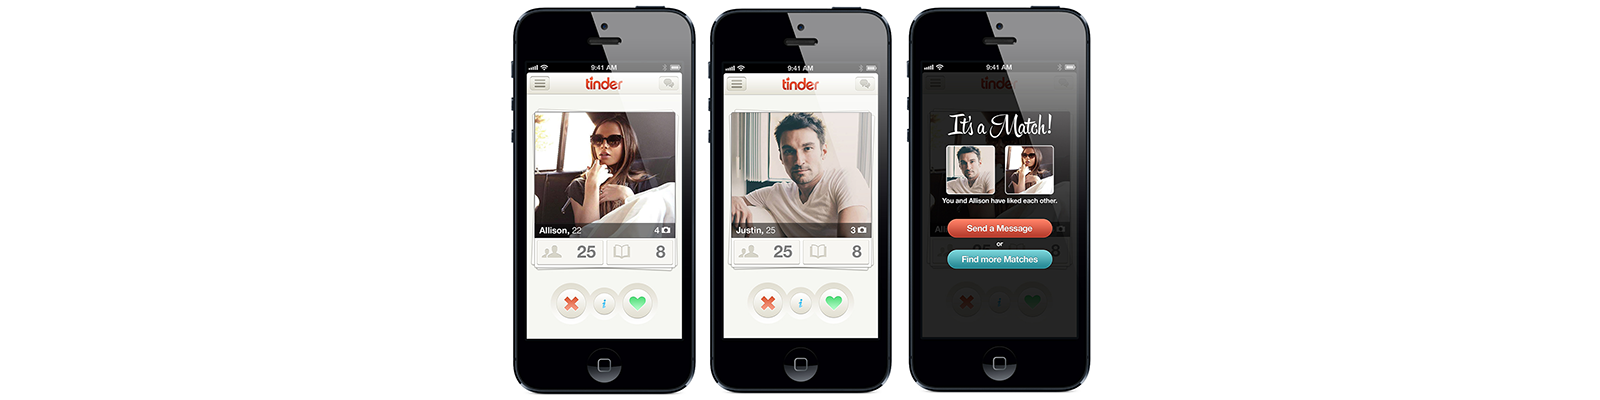 vestimenta de los mexicas yahoo dating: how much info do dating apps show